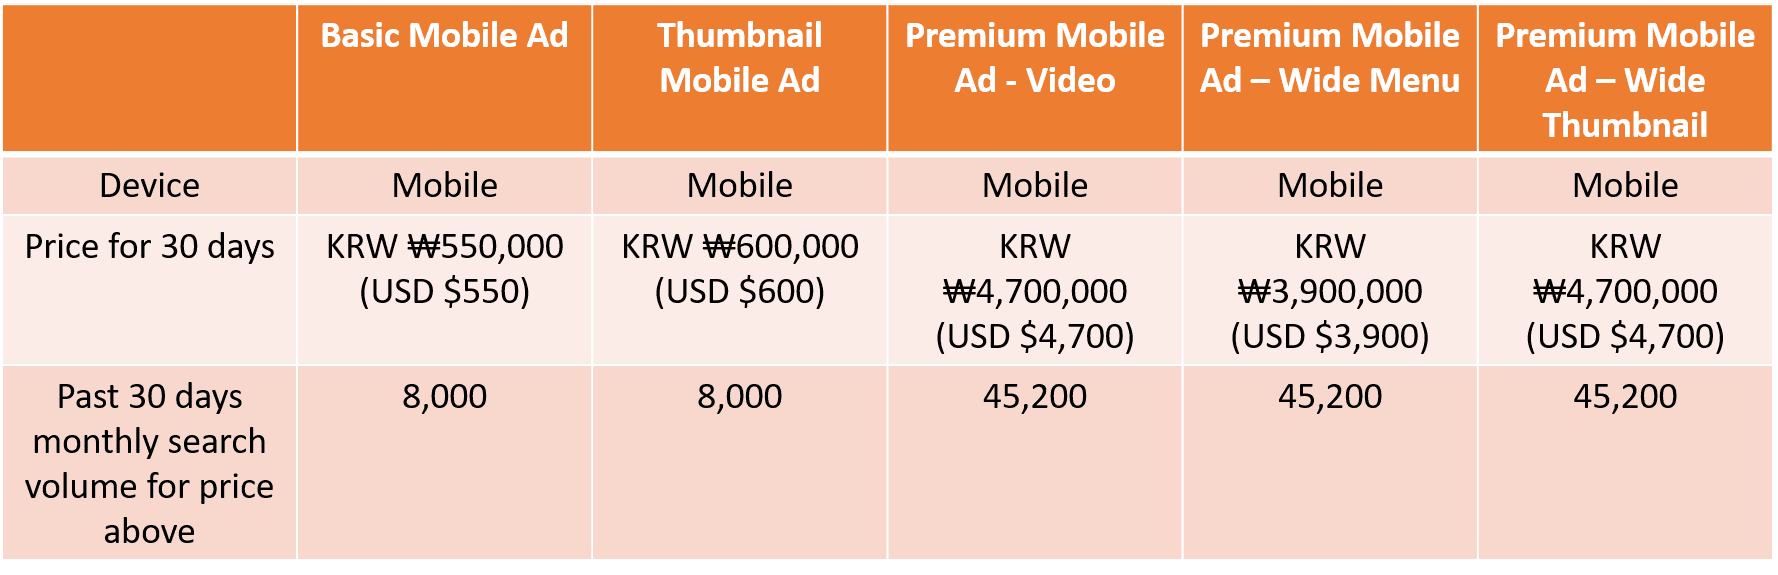 Naver Ads: Mobile Brand Search Ad Pricing